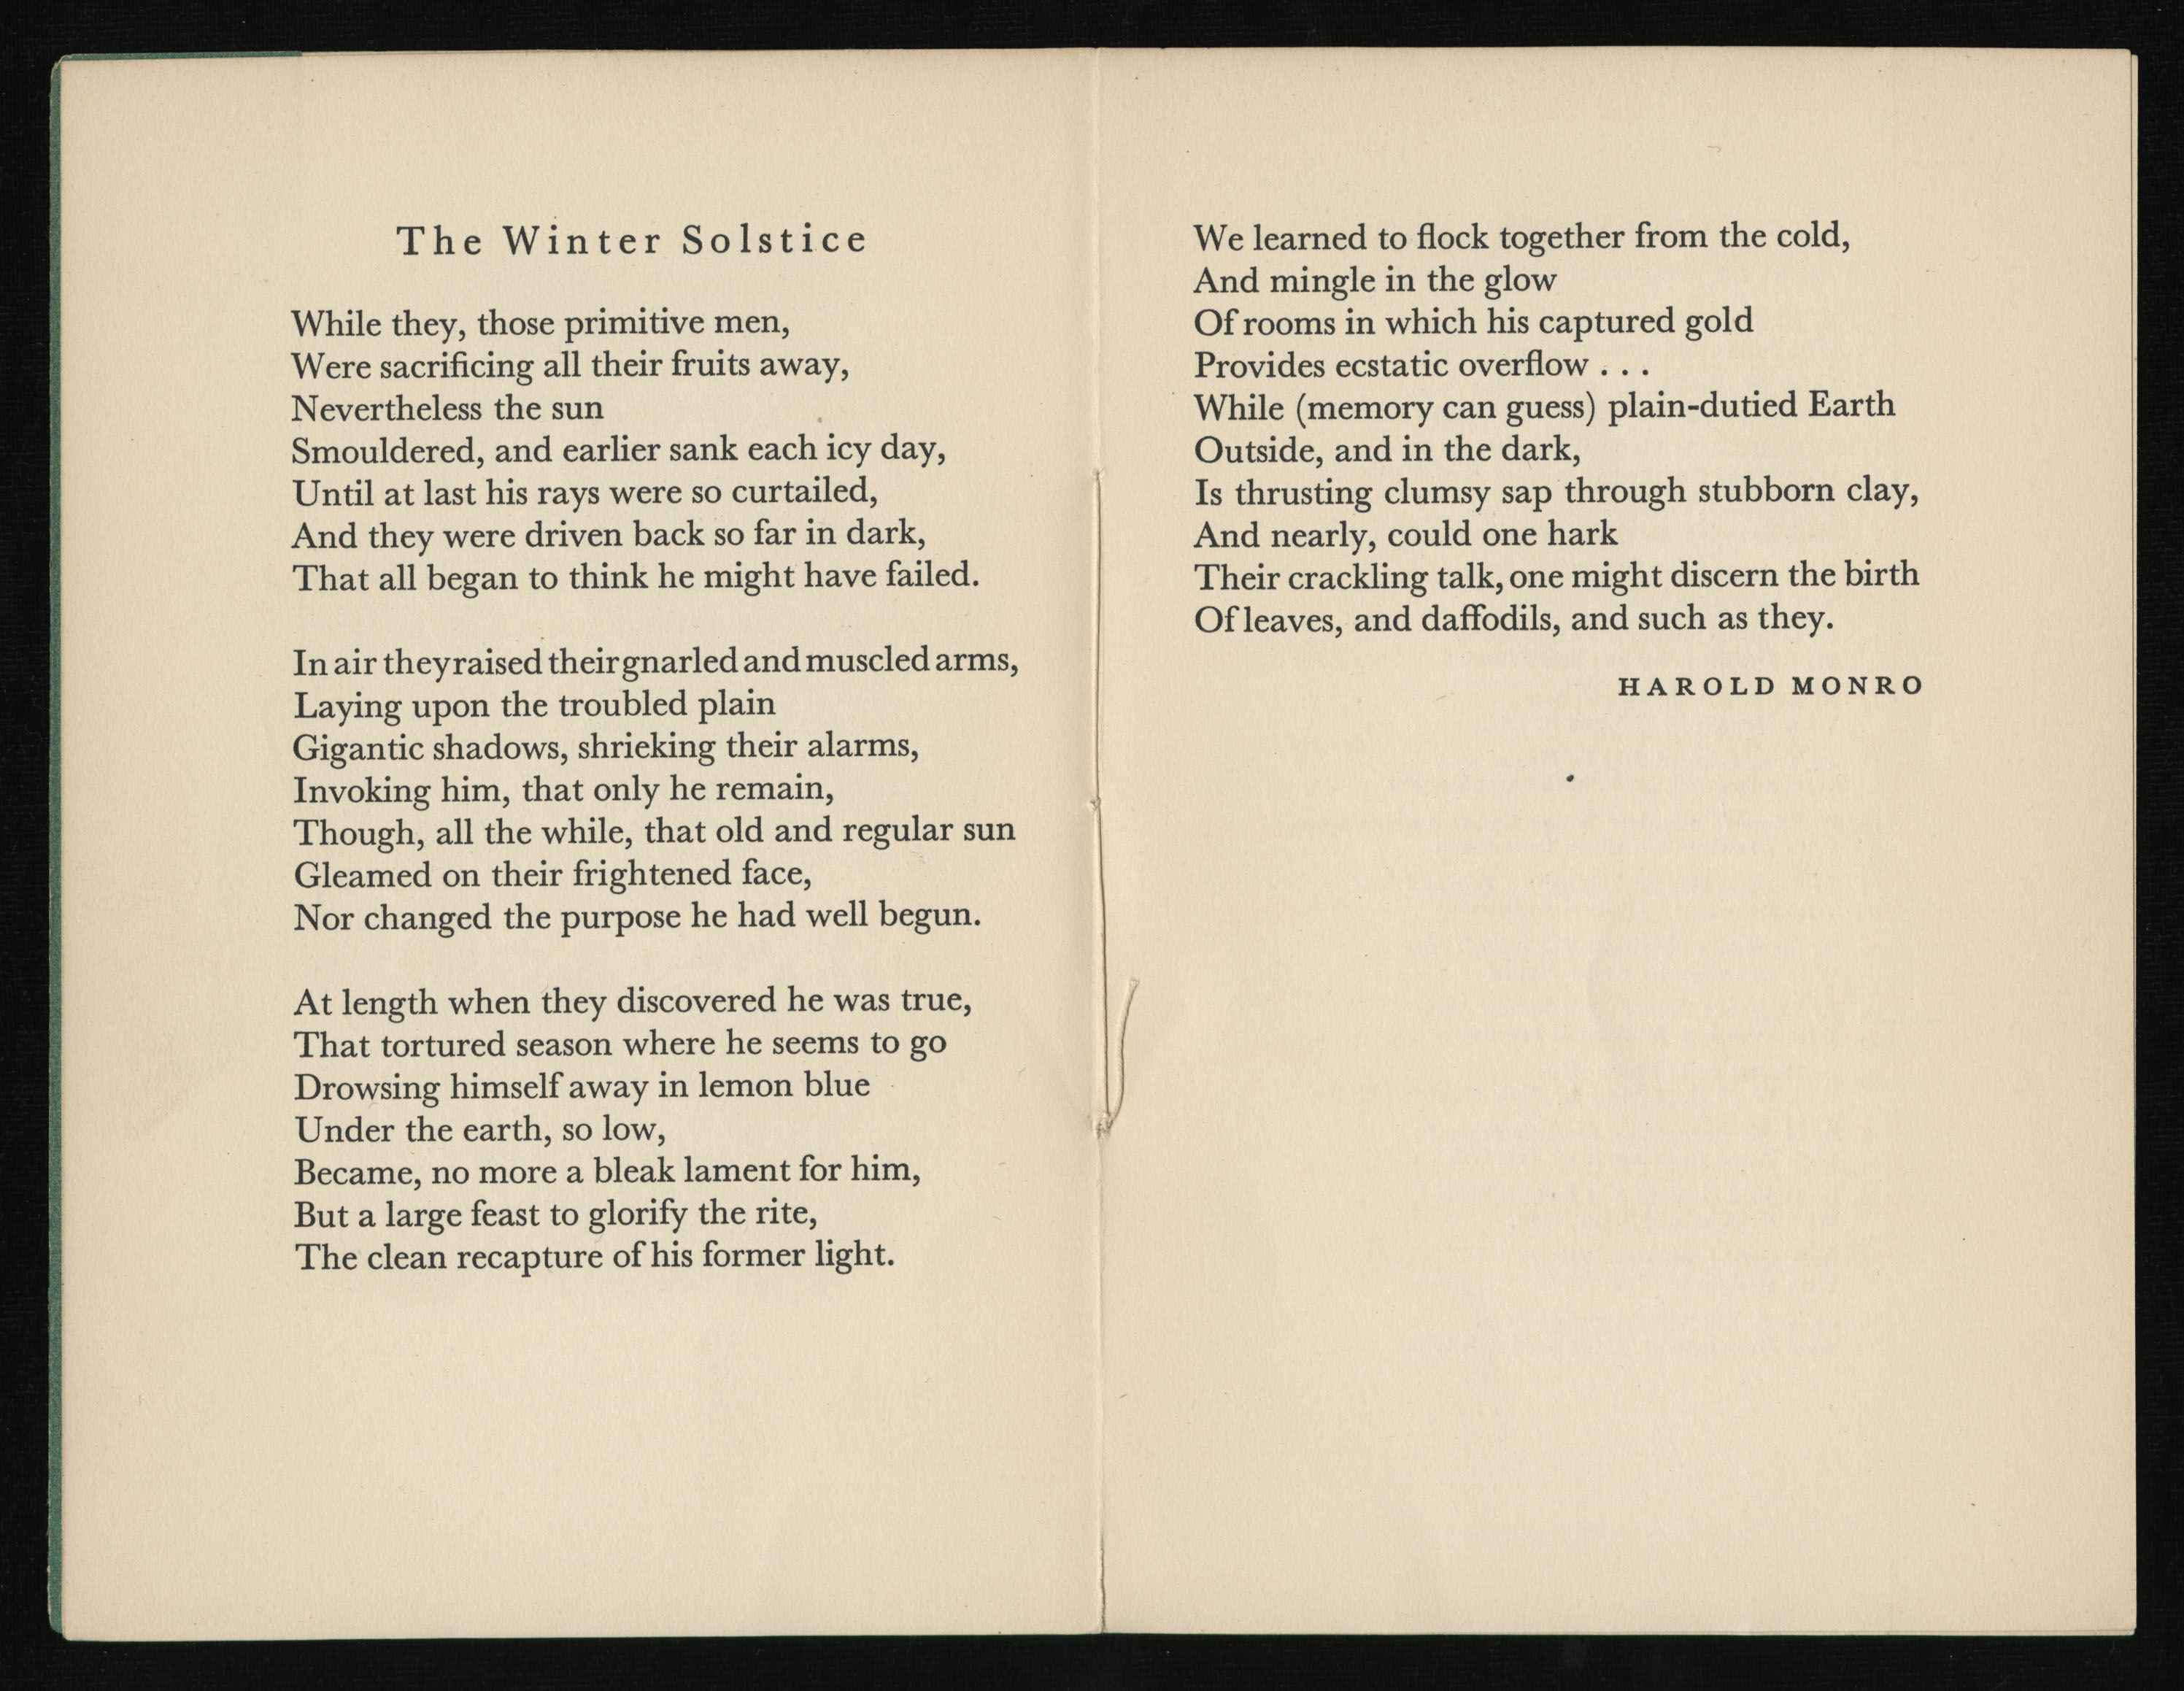 The Winter Solstice, a poem by Harold Monro